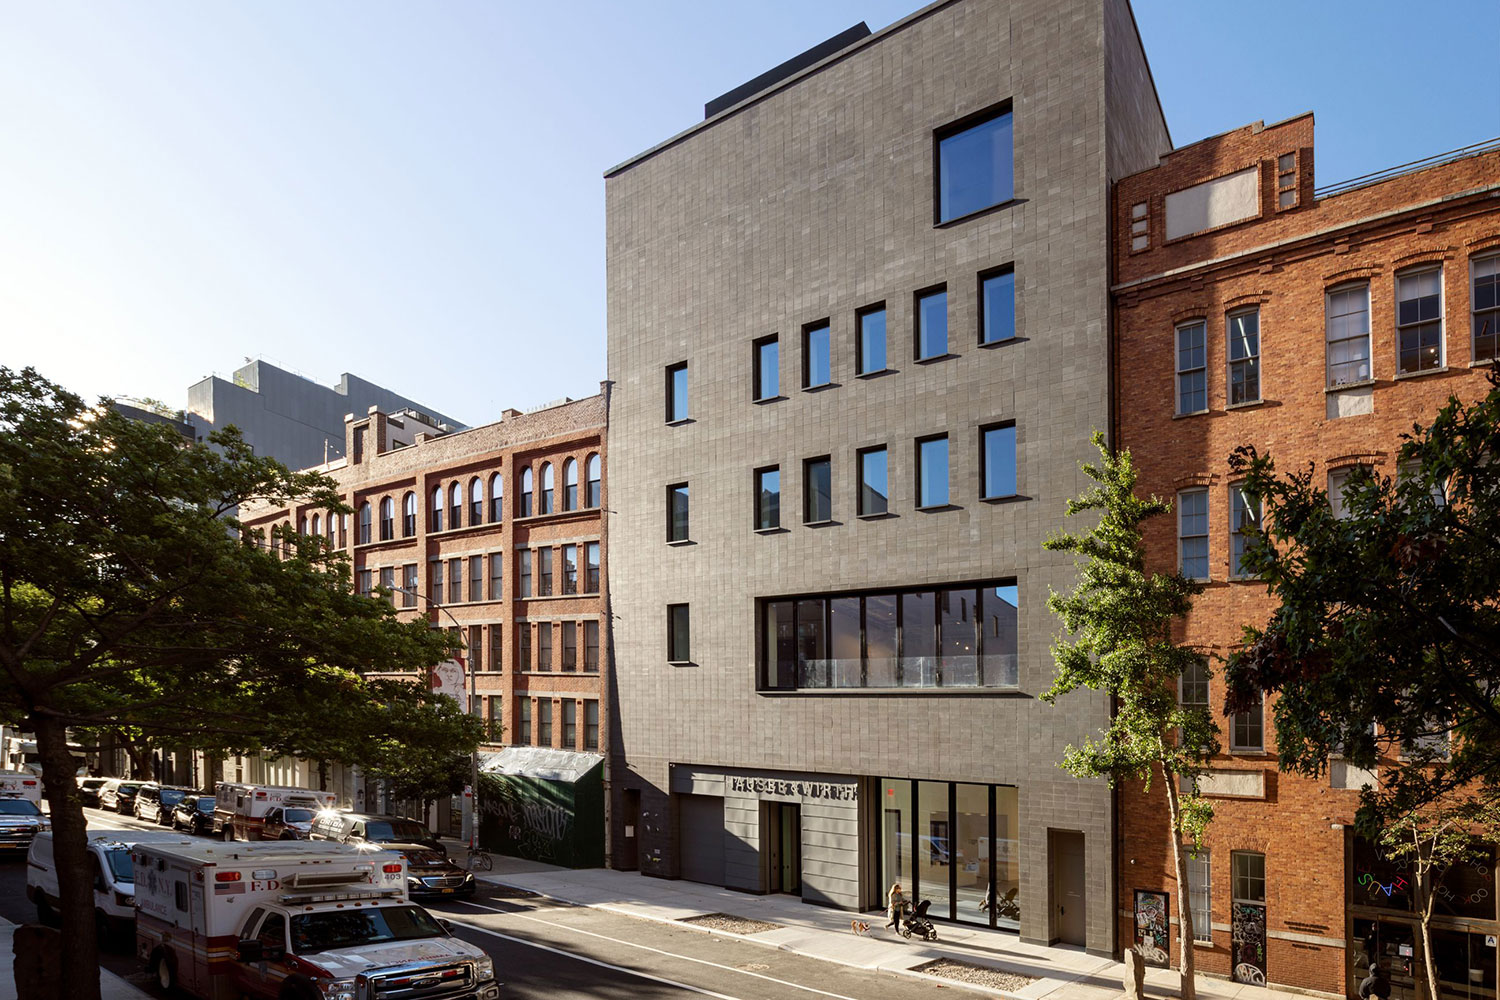 The exterior facade of Hauser & Wirth 22nd Street